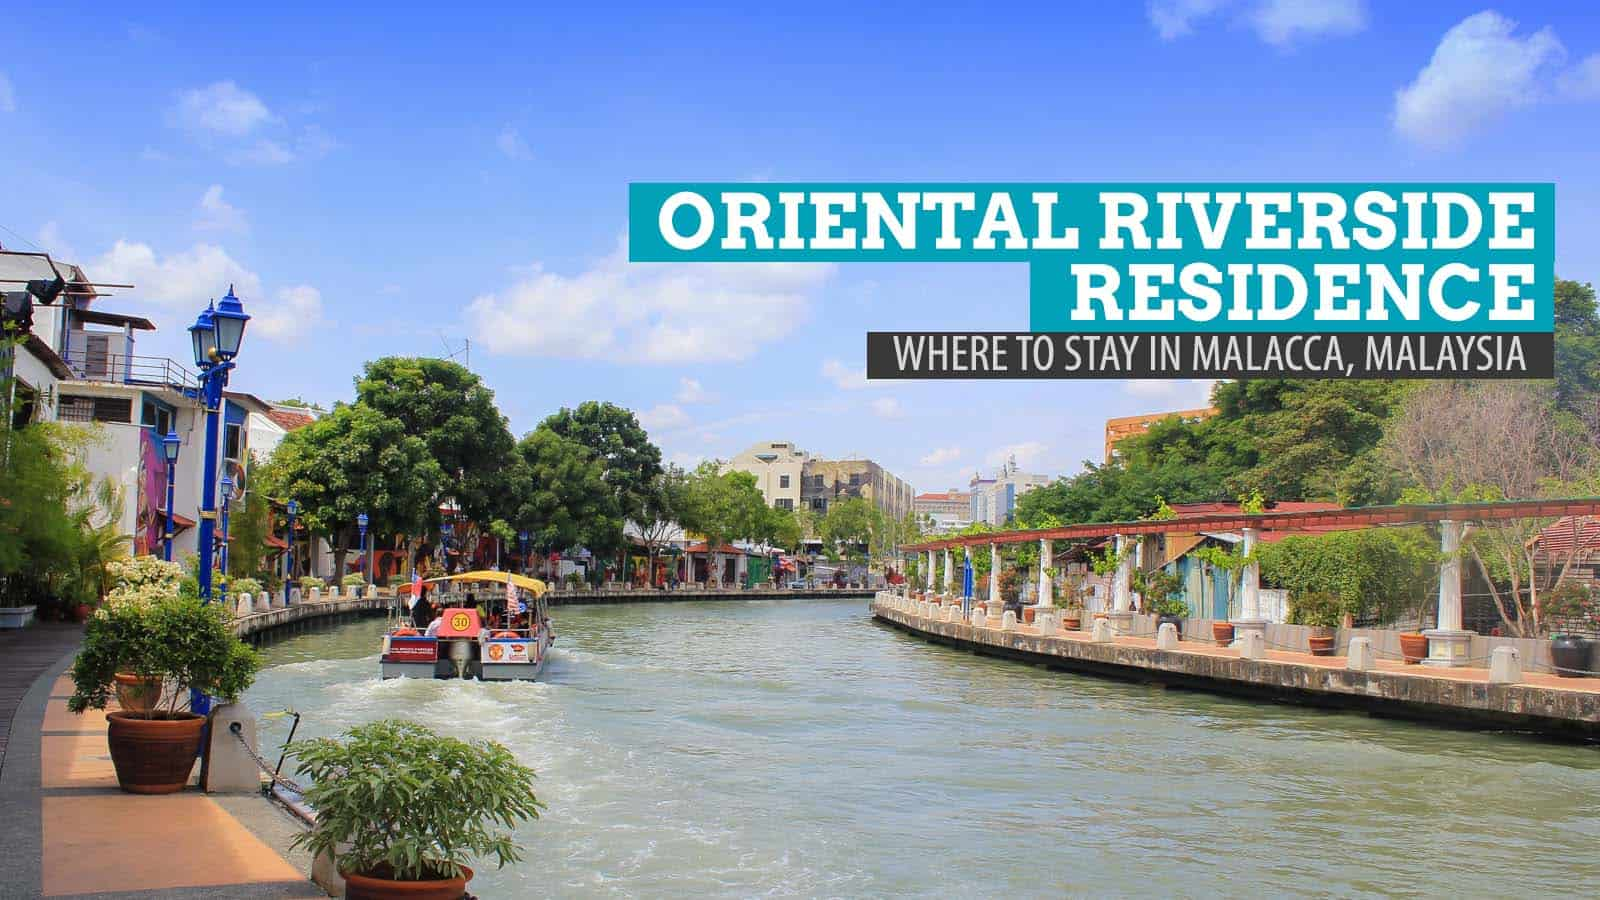 Oriental Riverside Residence Guest House in Malacca, Malaysia